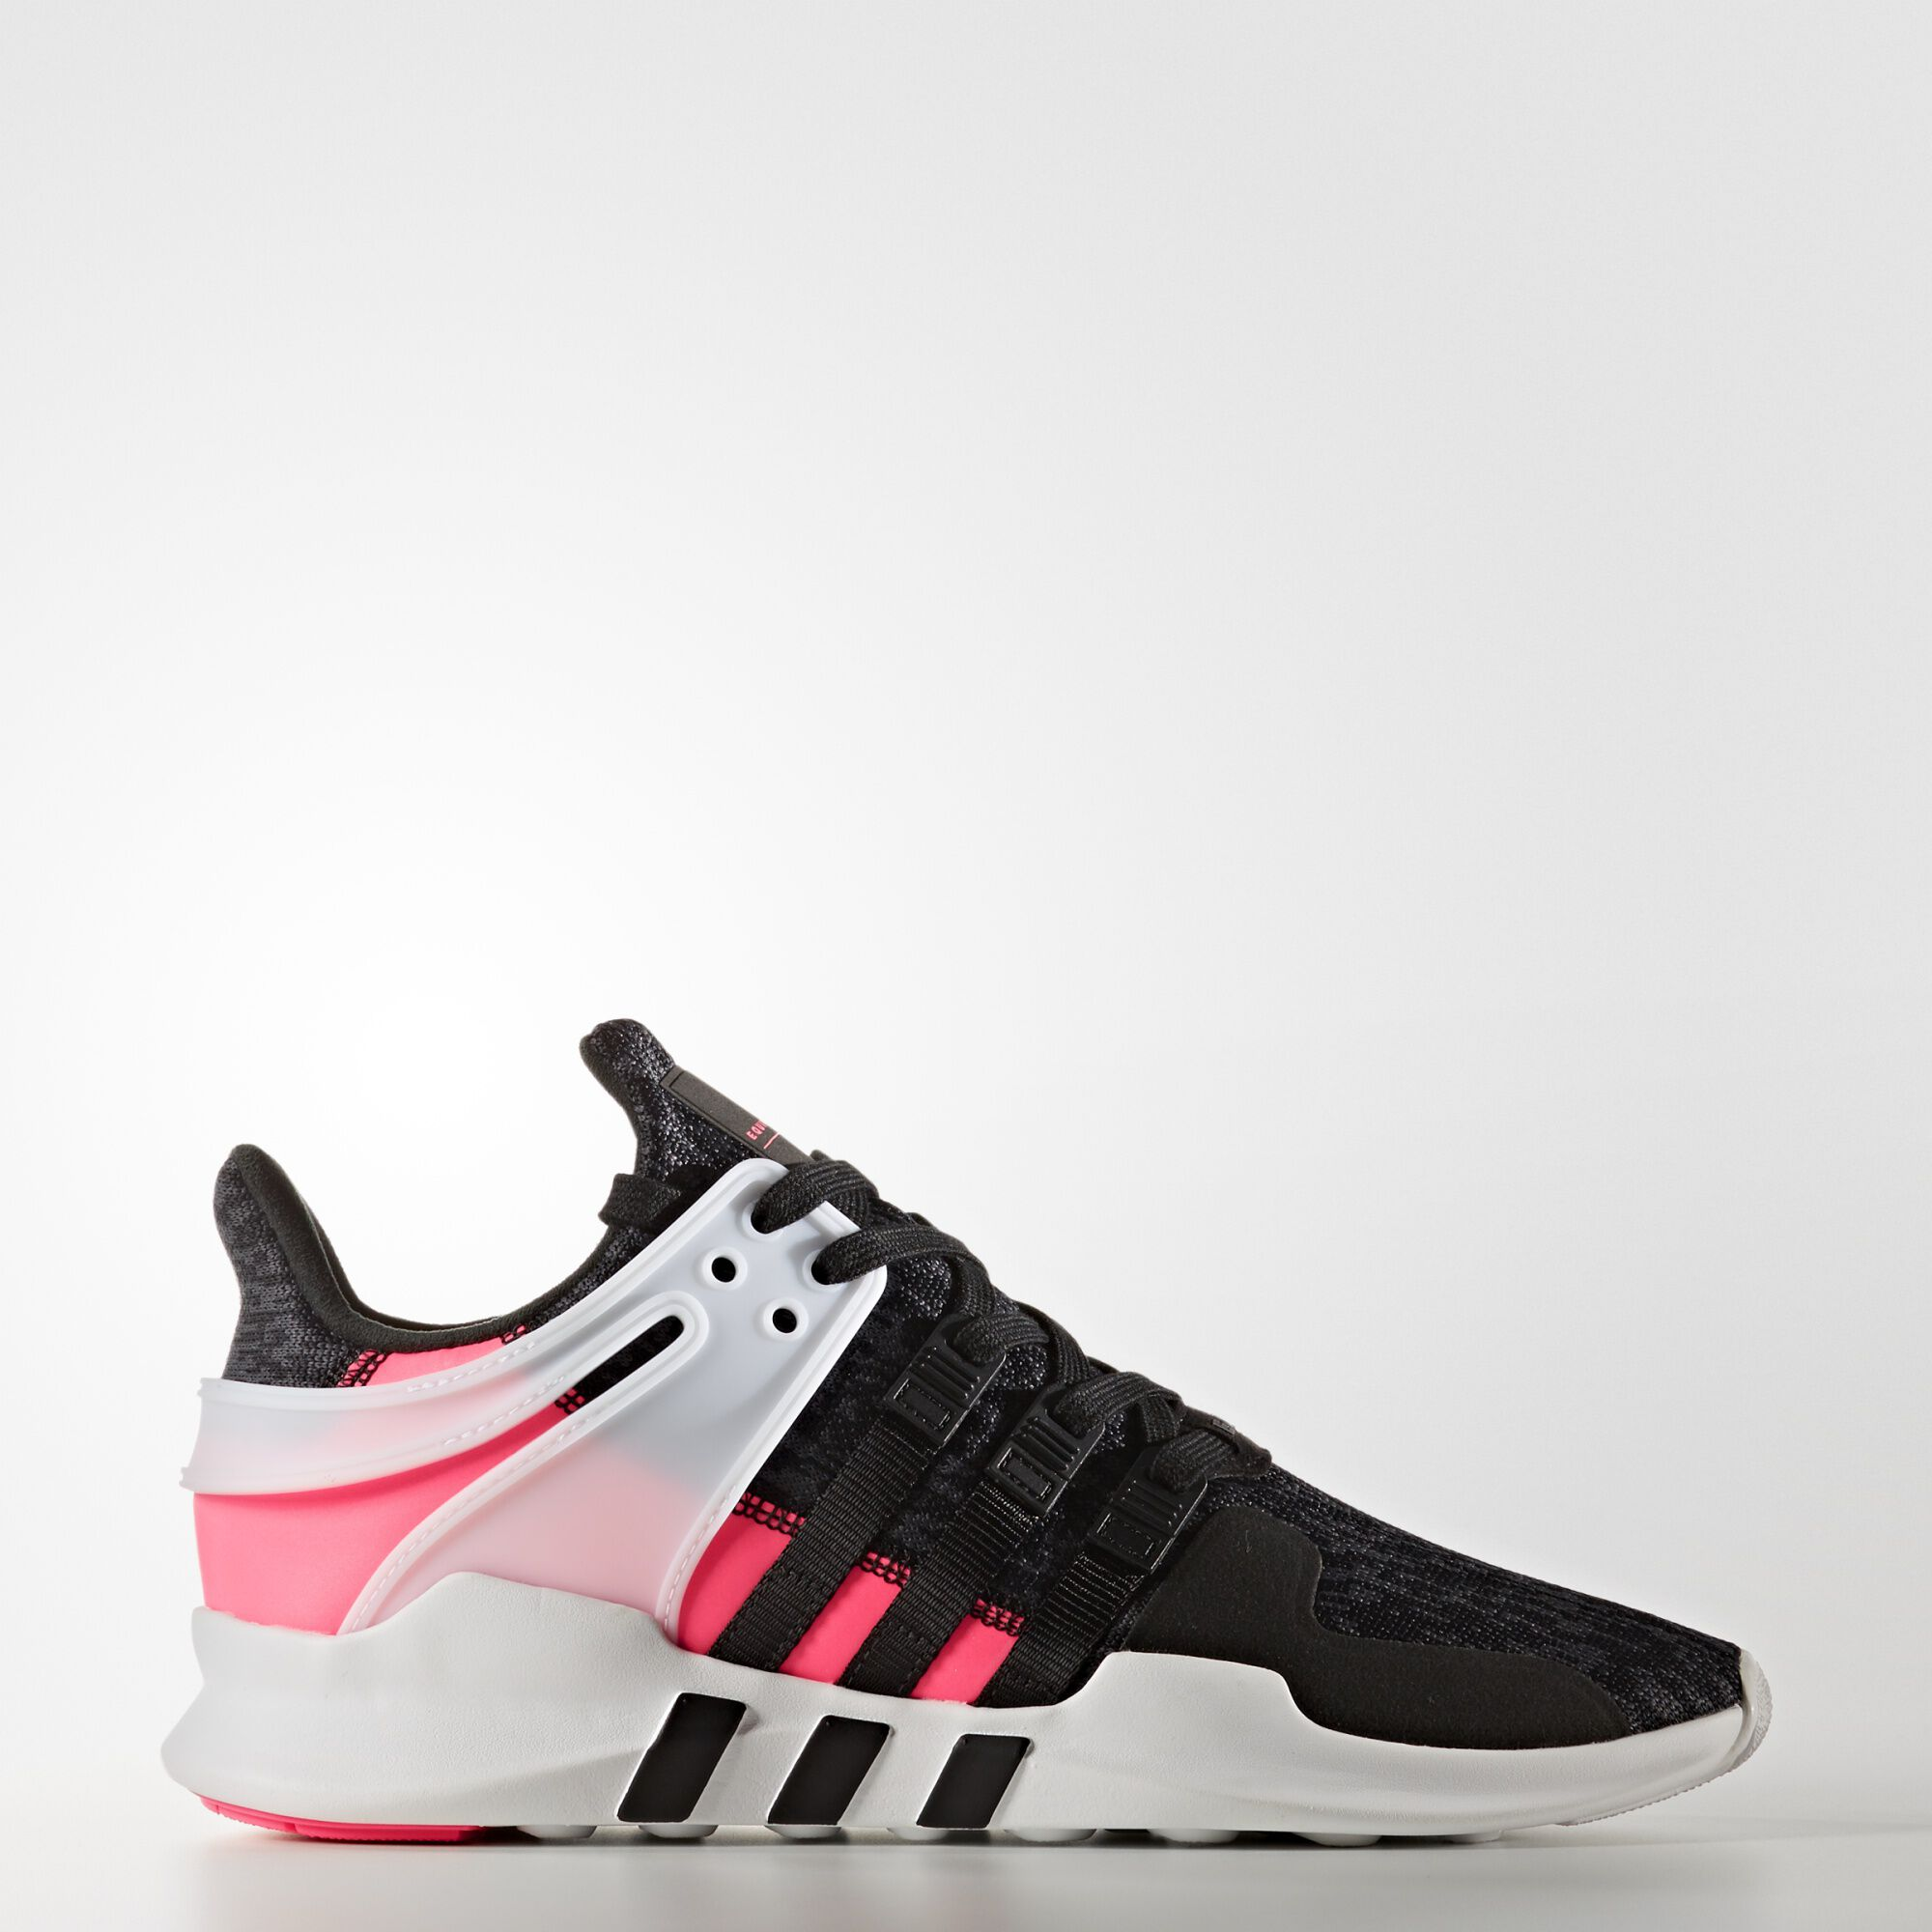 Adidas EQT Support ADV Primeknit Core Black Turbo